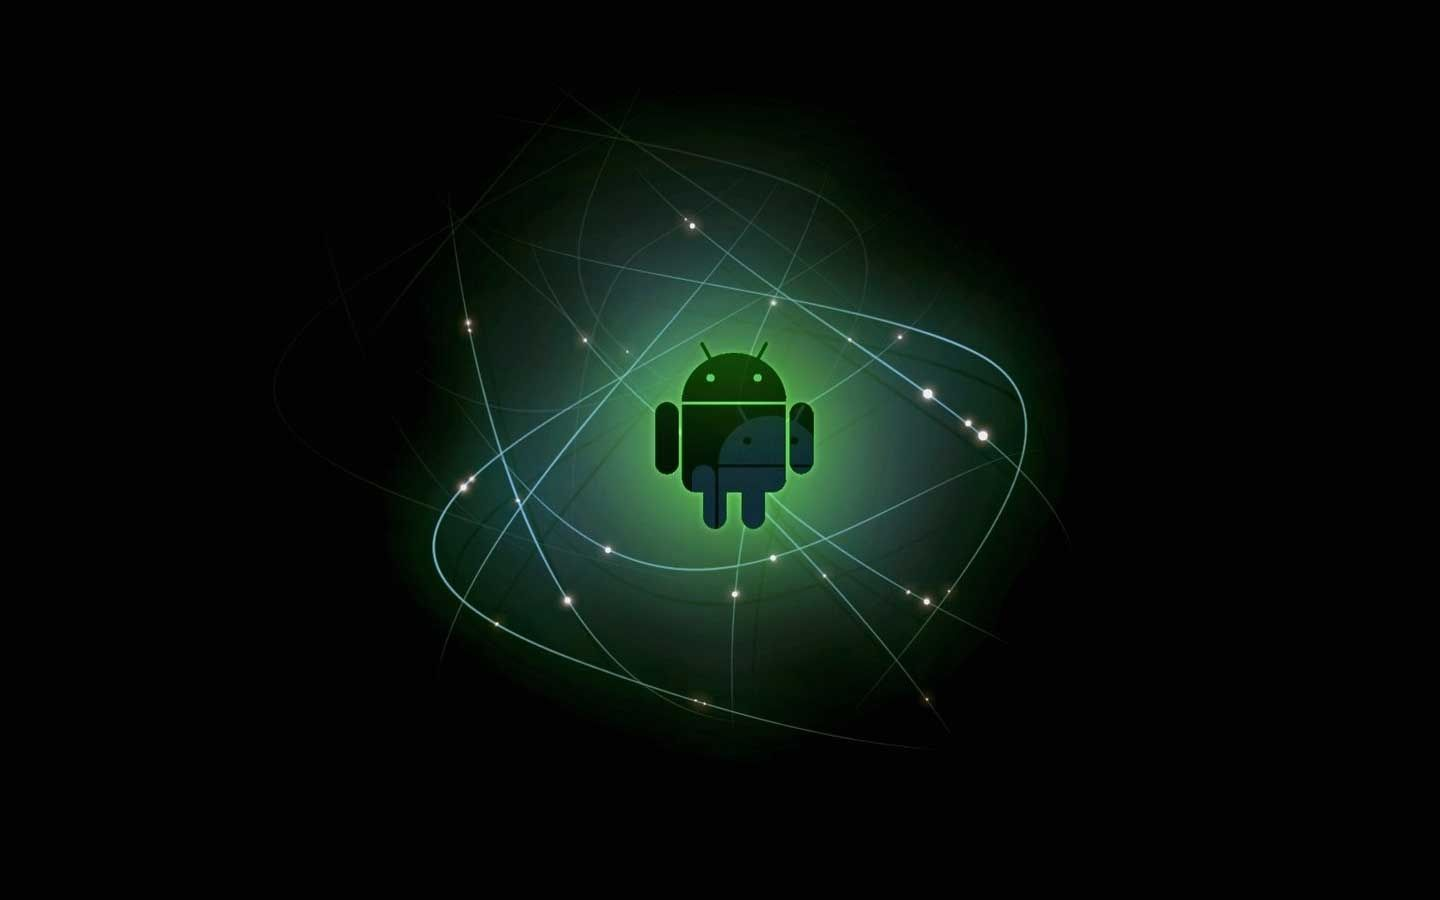 10 latest dark android wallpaper hd full hd 1080p for pc background